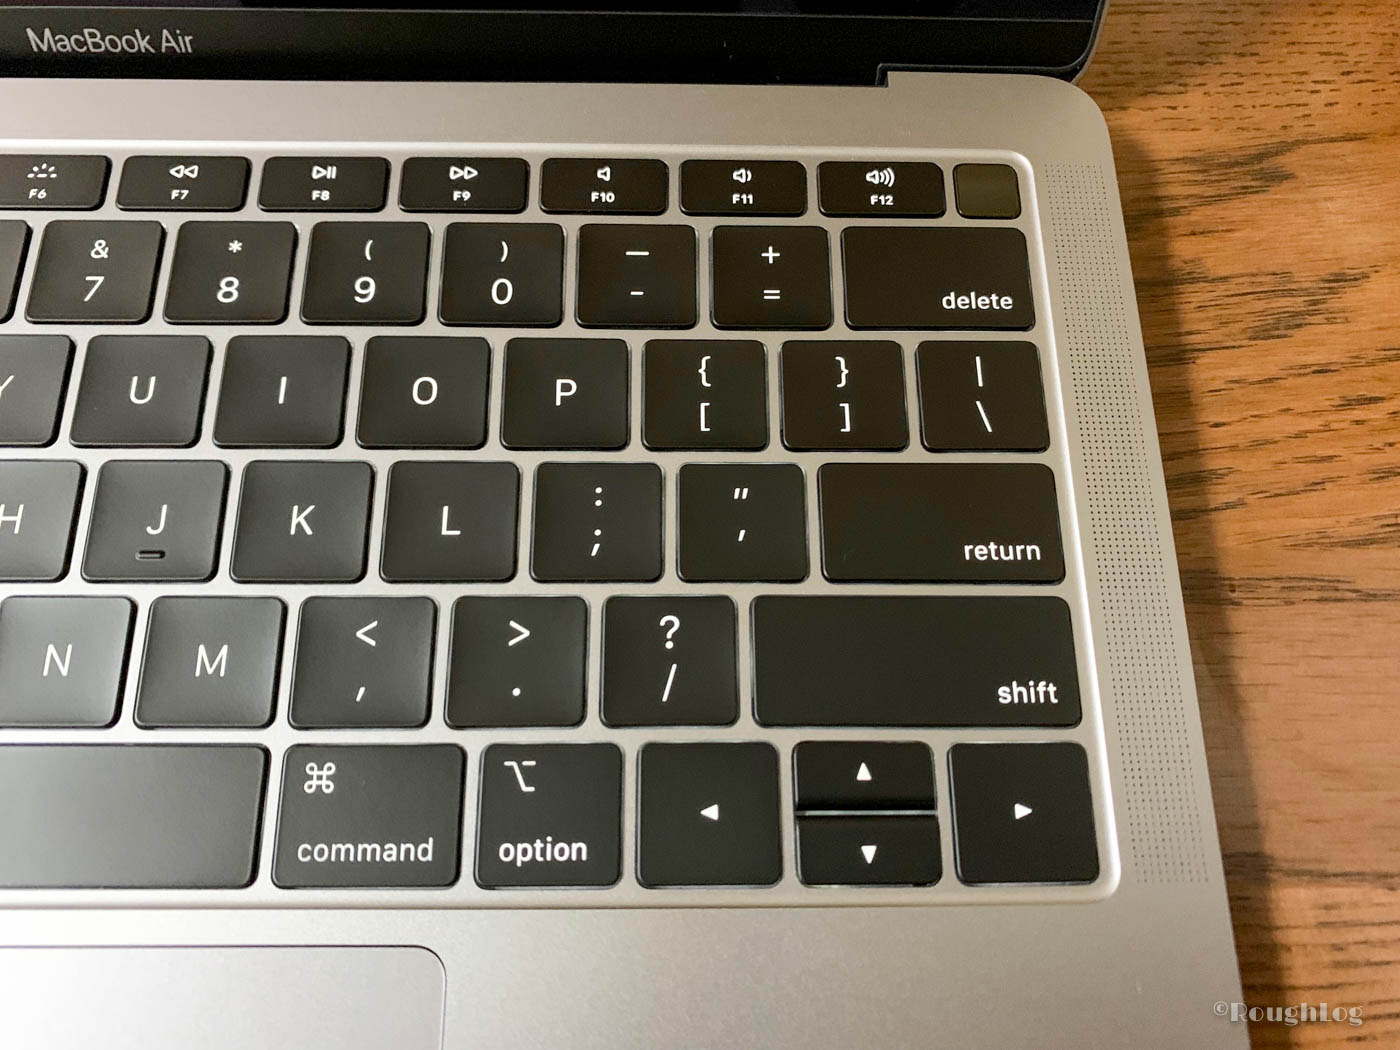 MacBook Air 2018はTouch IDを搭載、でもTouch Barは非搭載